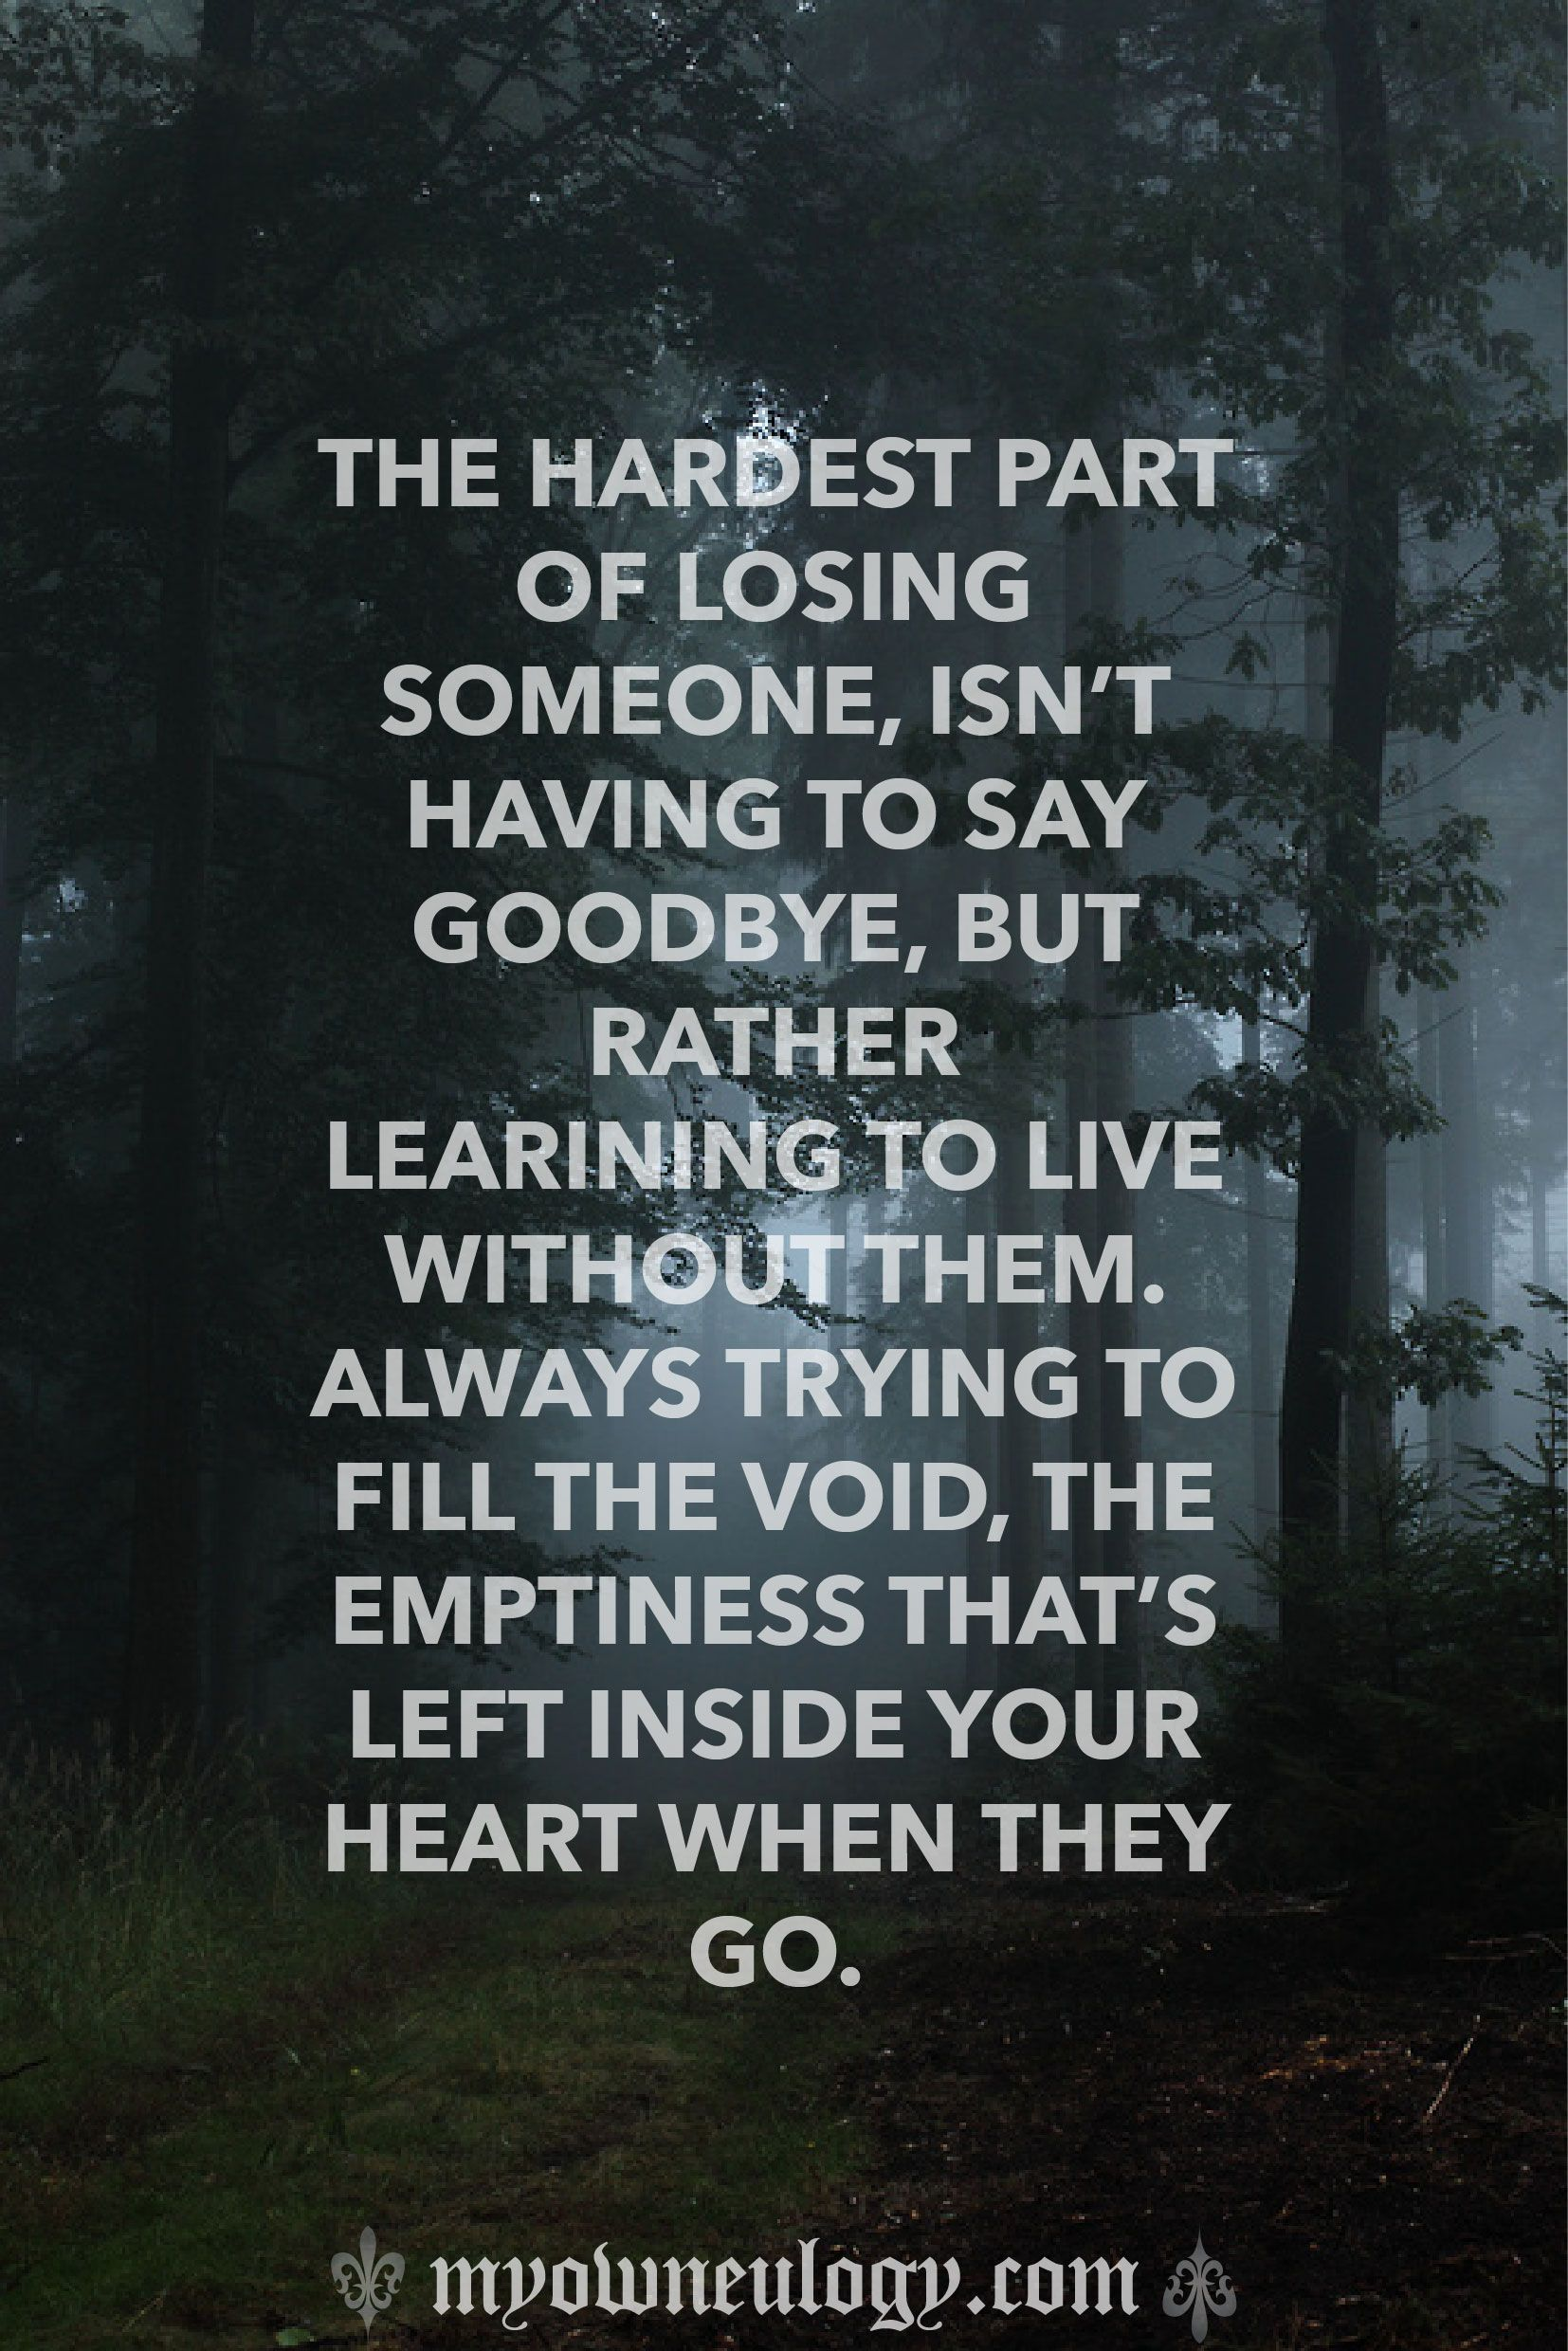 The hardest part of losing someone isn t having to say goodbye but rather learning to live without them Always trying to fill the void the emptiness